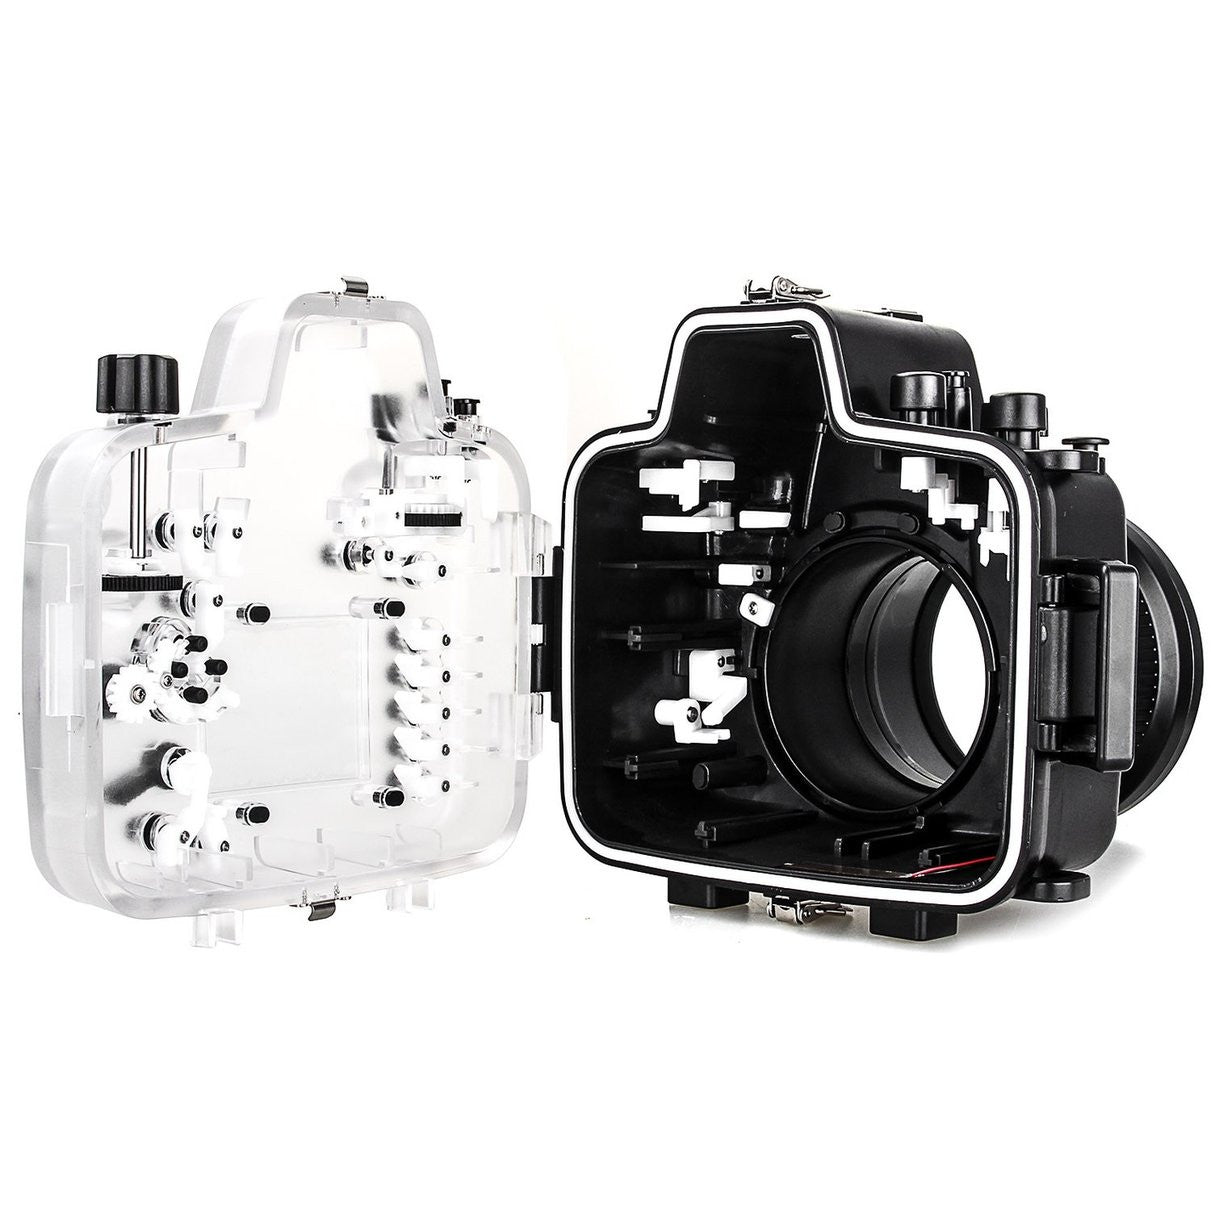 Meikon Waterproof Underwater Camera Housing Case Diving Equipment 60m/195ft for Nikon D800 - Spinner-Gadget